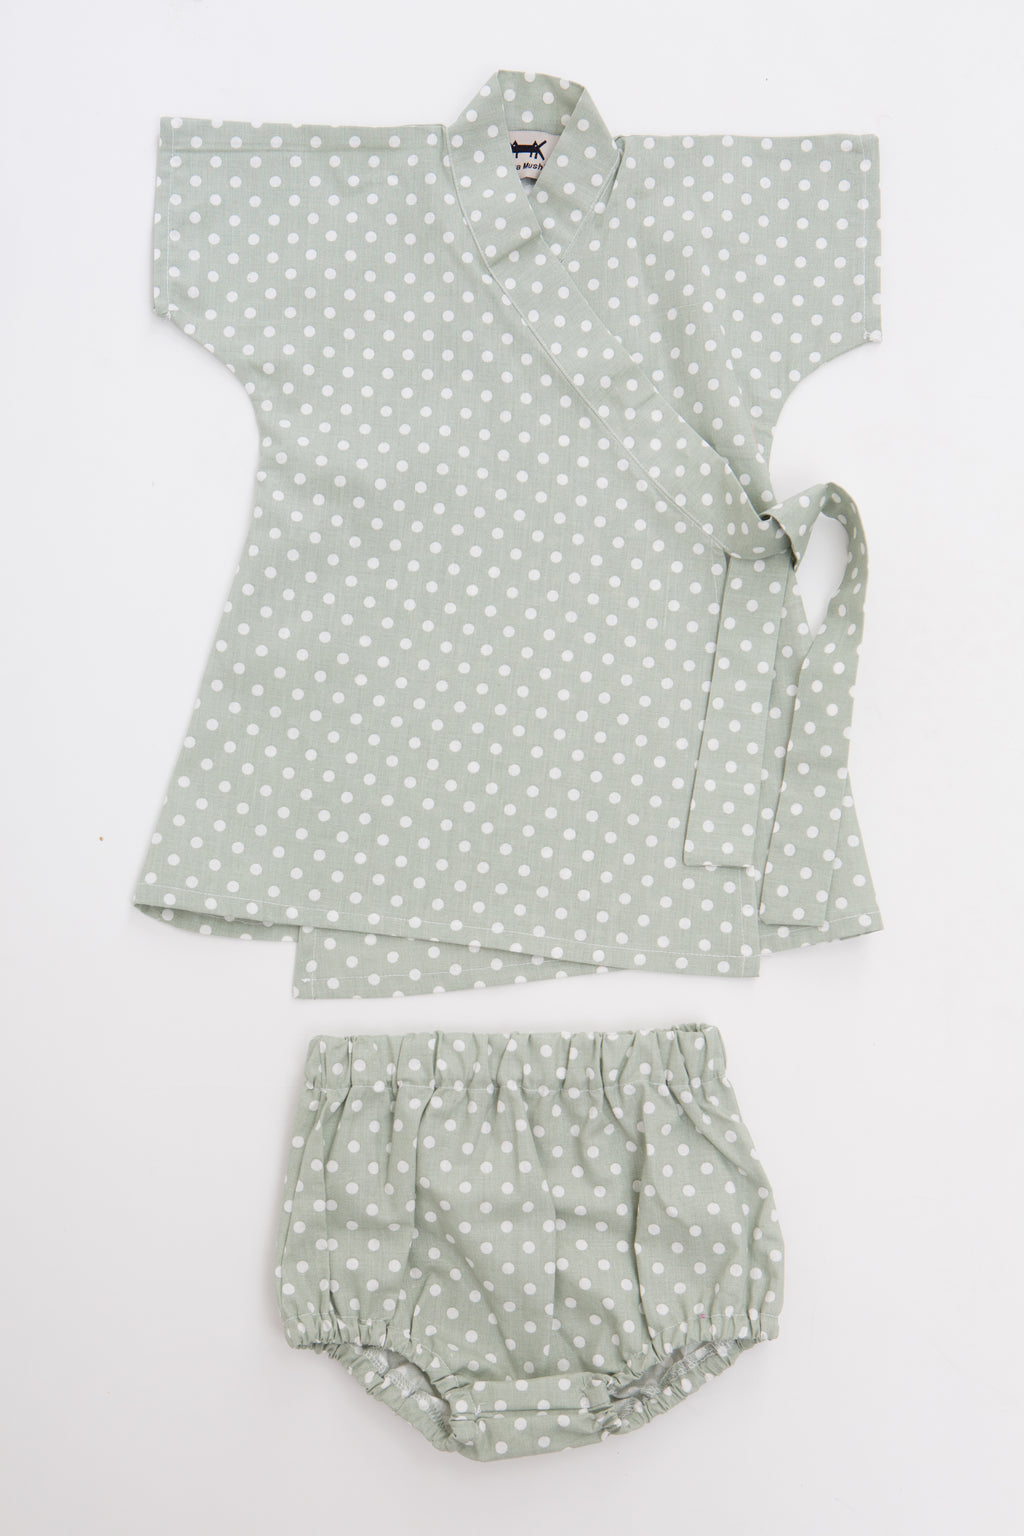 Baby Kimono Dress in Mint Polka Dots